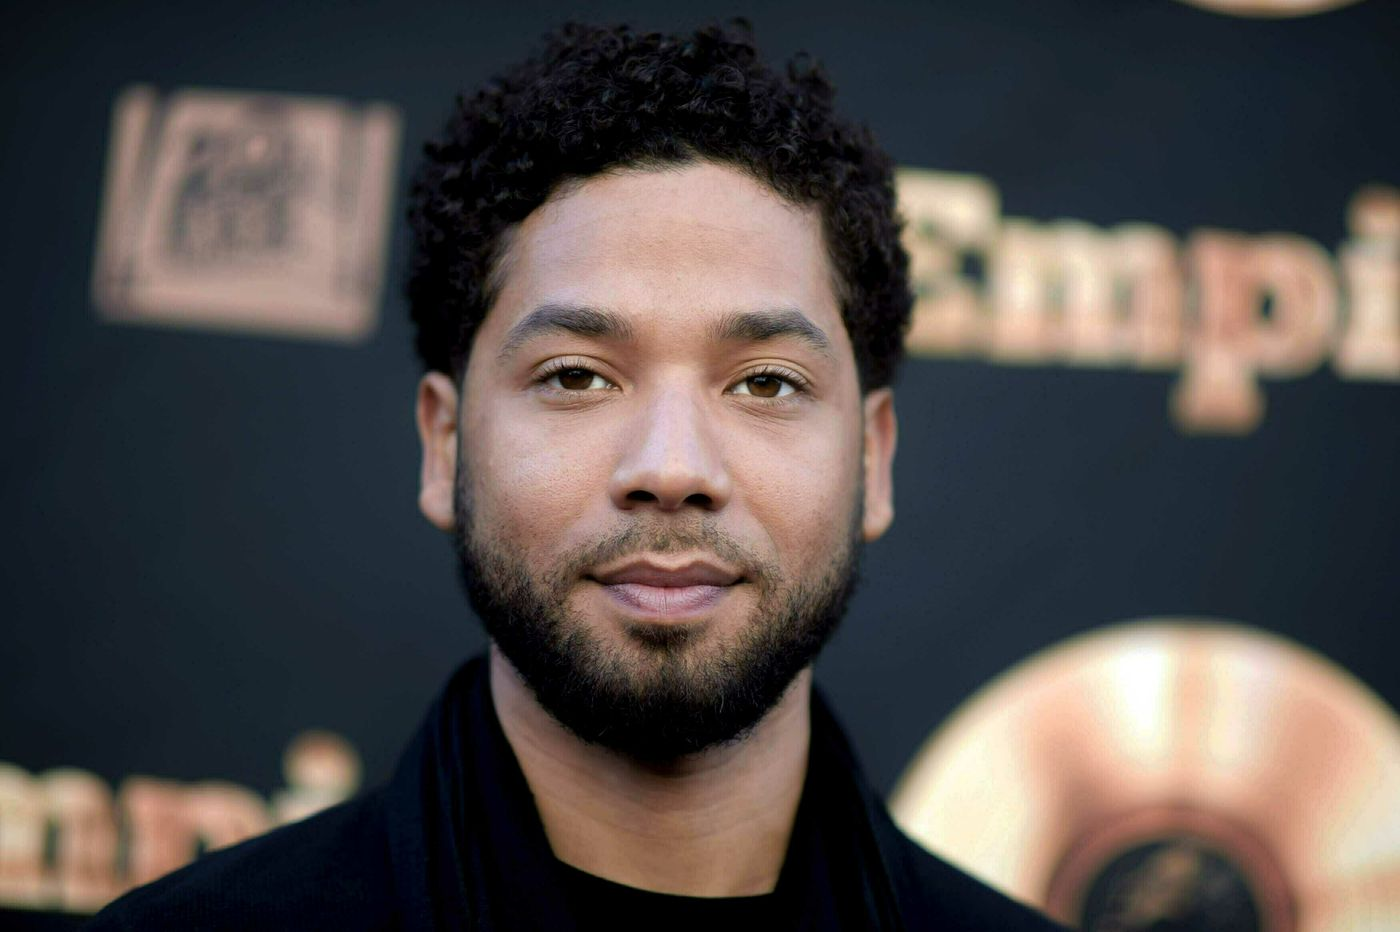 'Empire' actor Jussie Smollett arrested, to face felony charge for false police report, authorities say